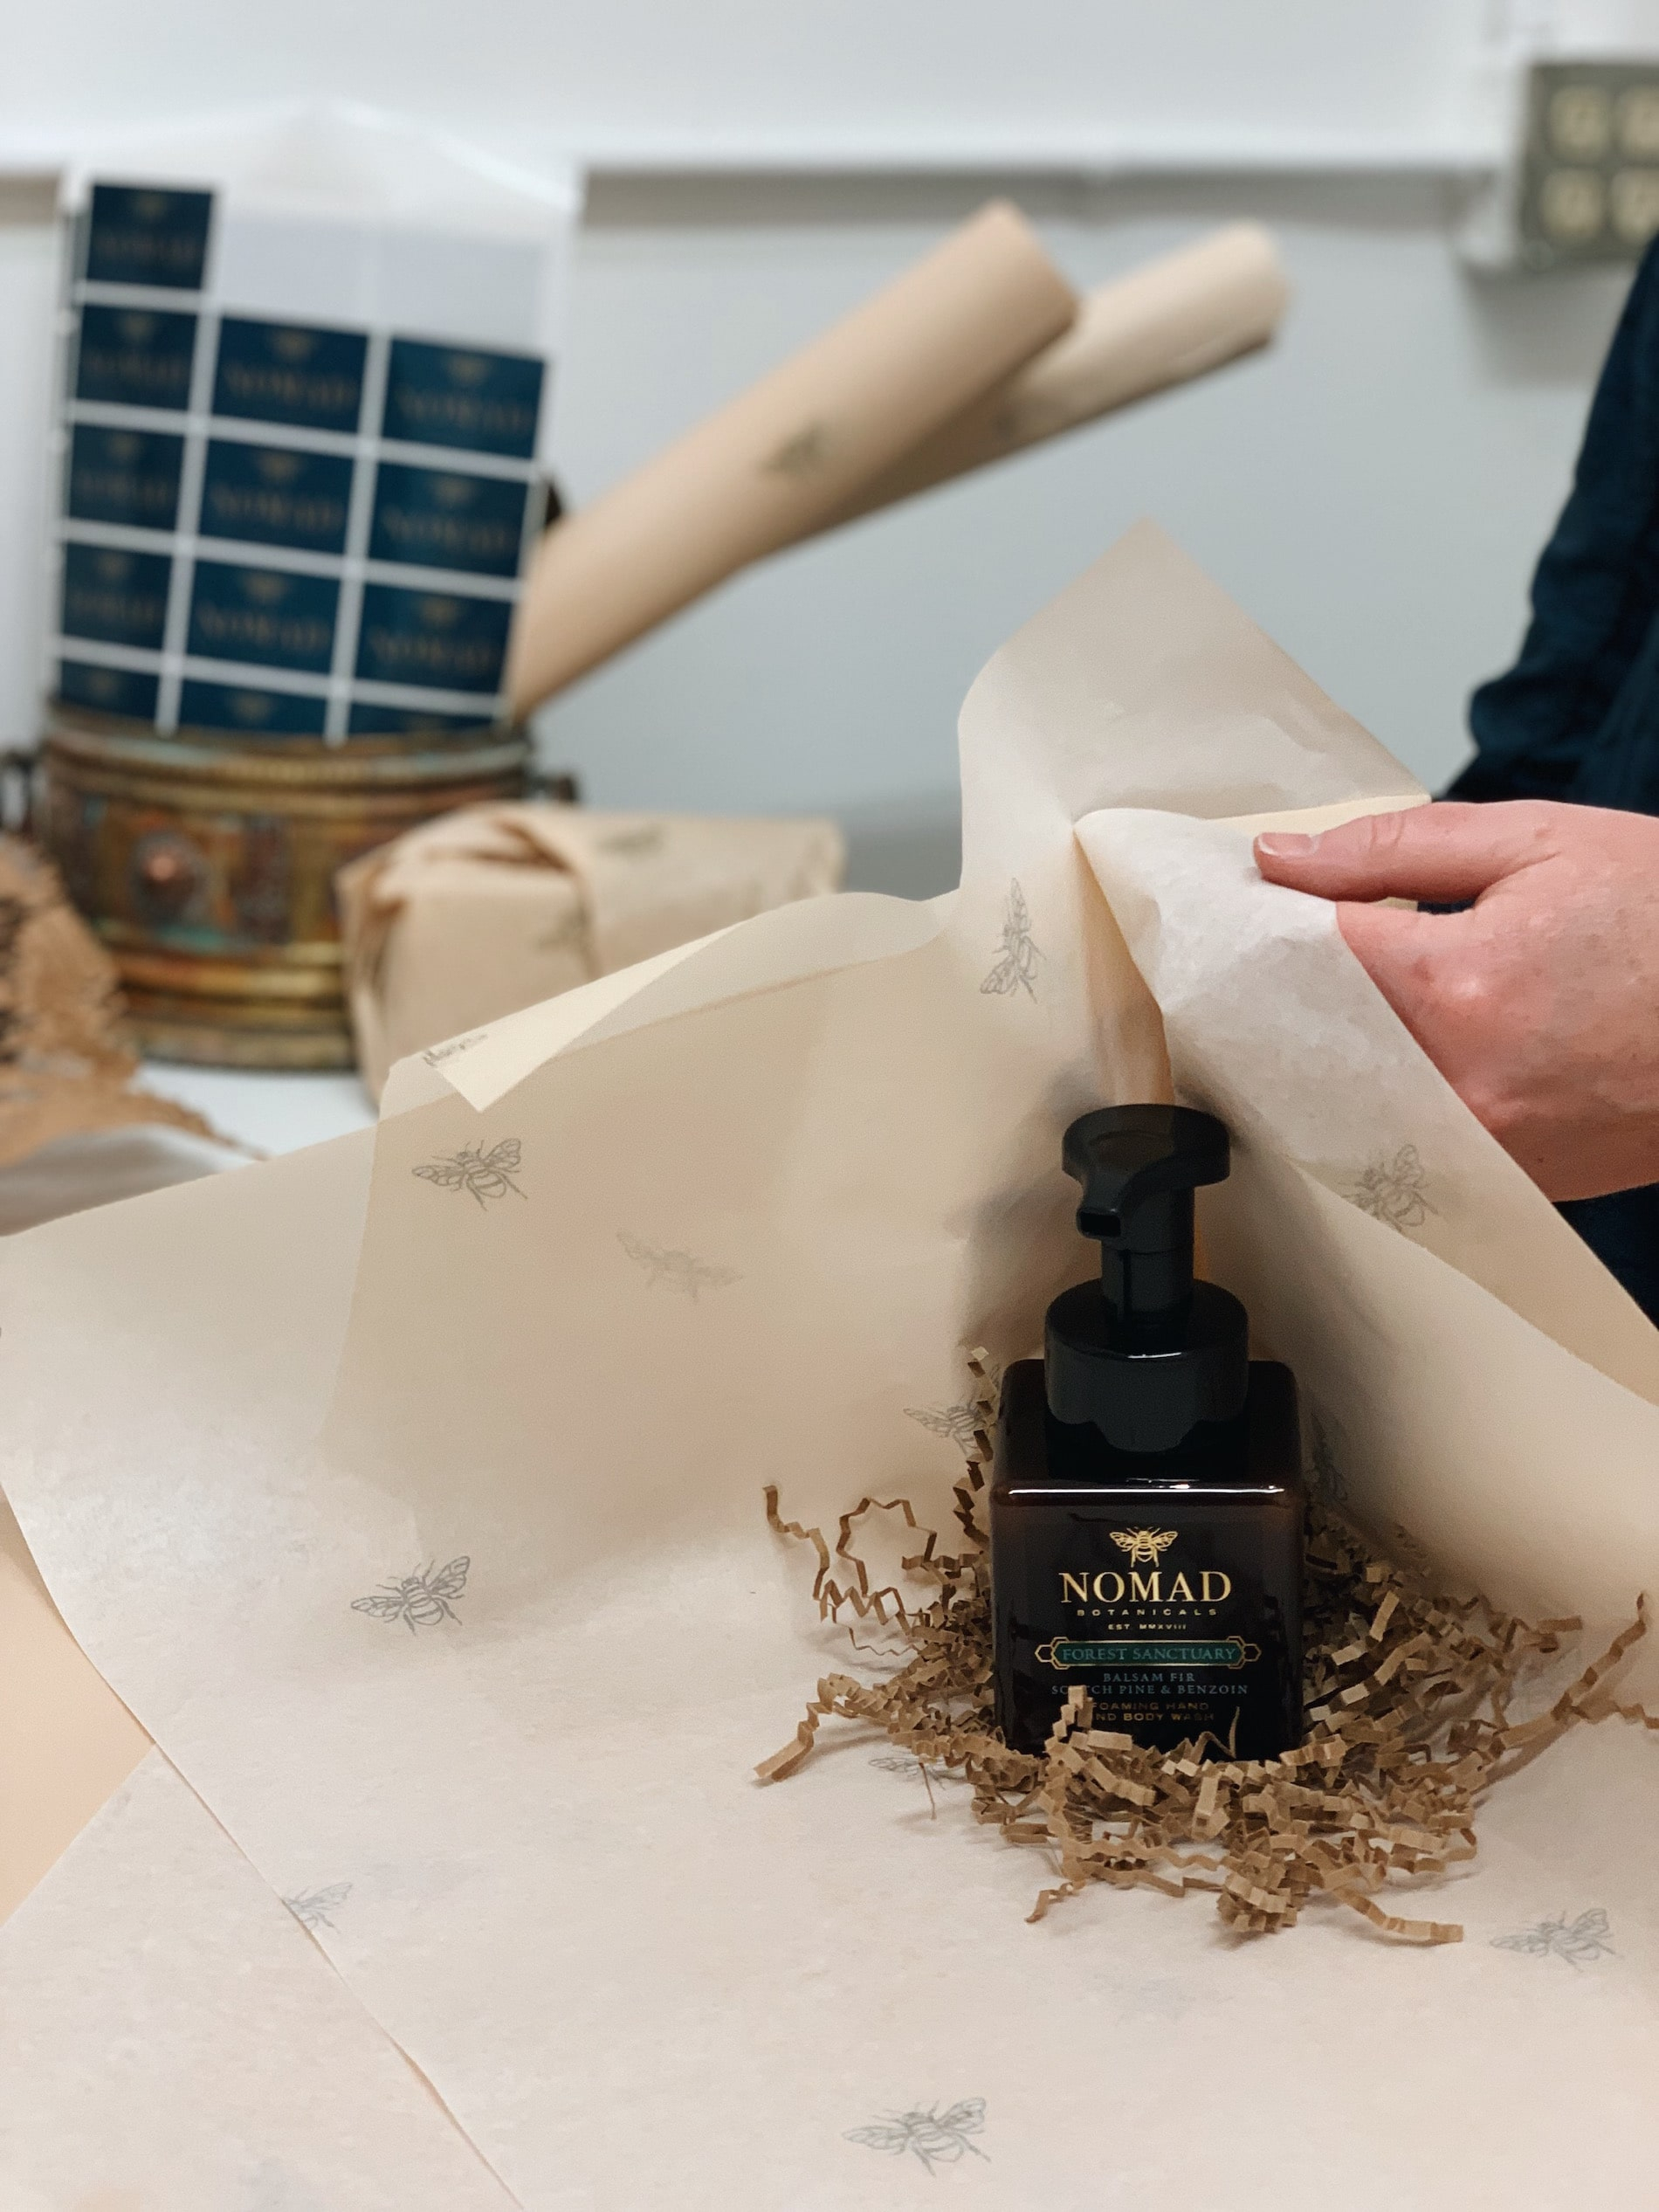 Nomad Botanicals wrapping station